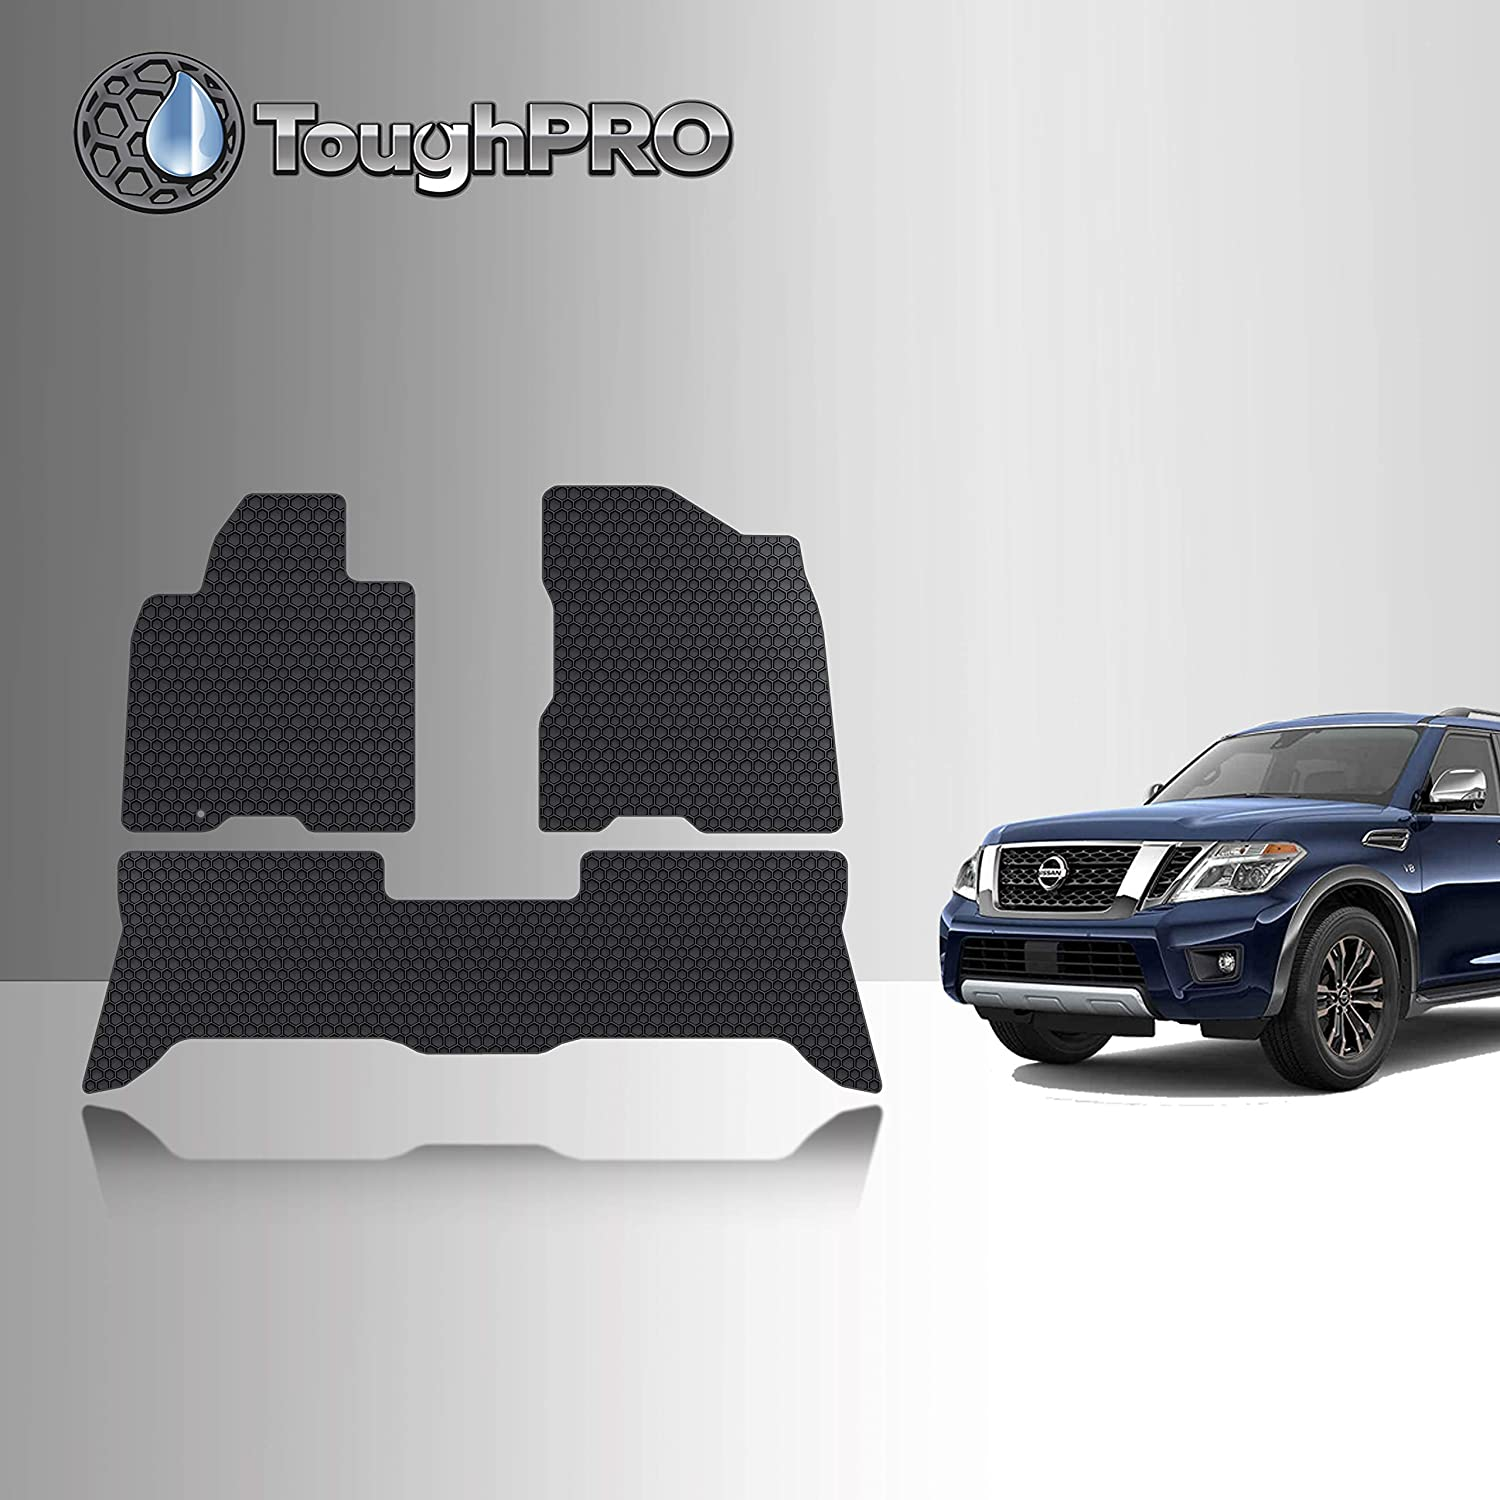 All Weather - Black Rubber TOUGHPRO Floor Mats Set 2018 3rd Row Compatible with Nissan Armada Heavy Duty - 2017 2019 Made in USA 2020